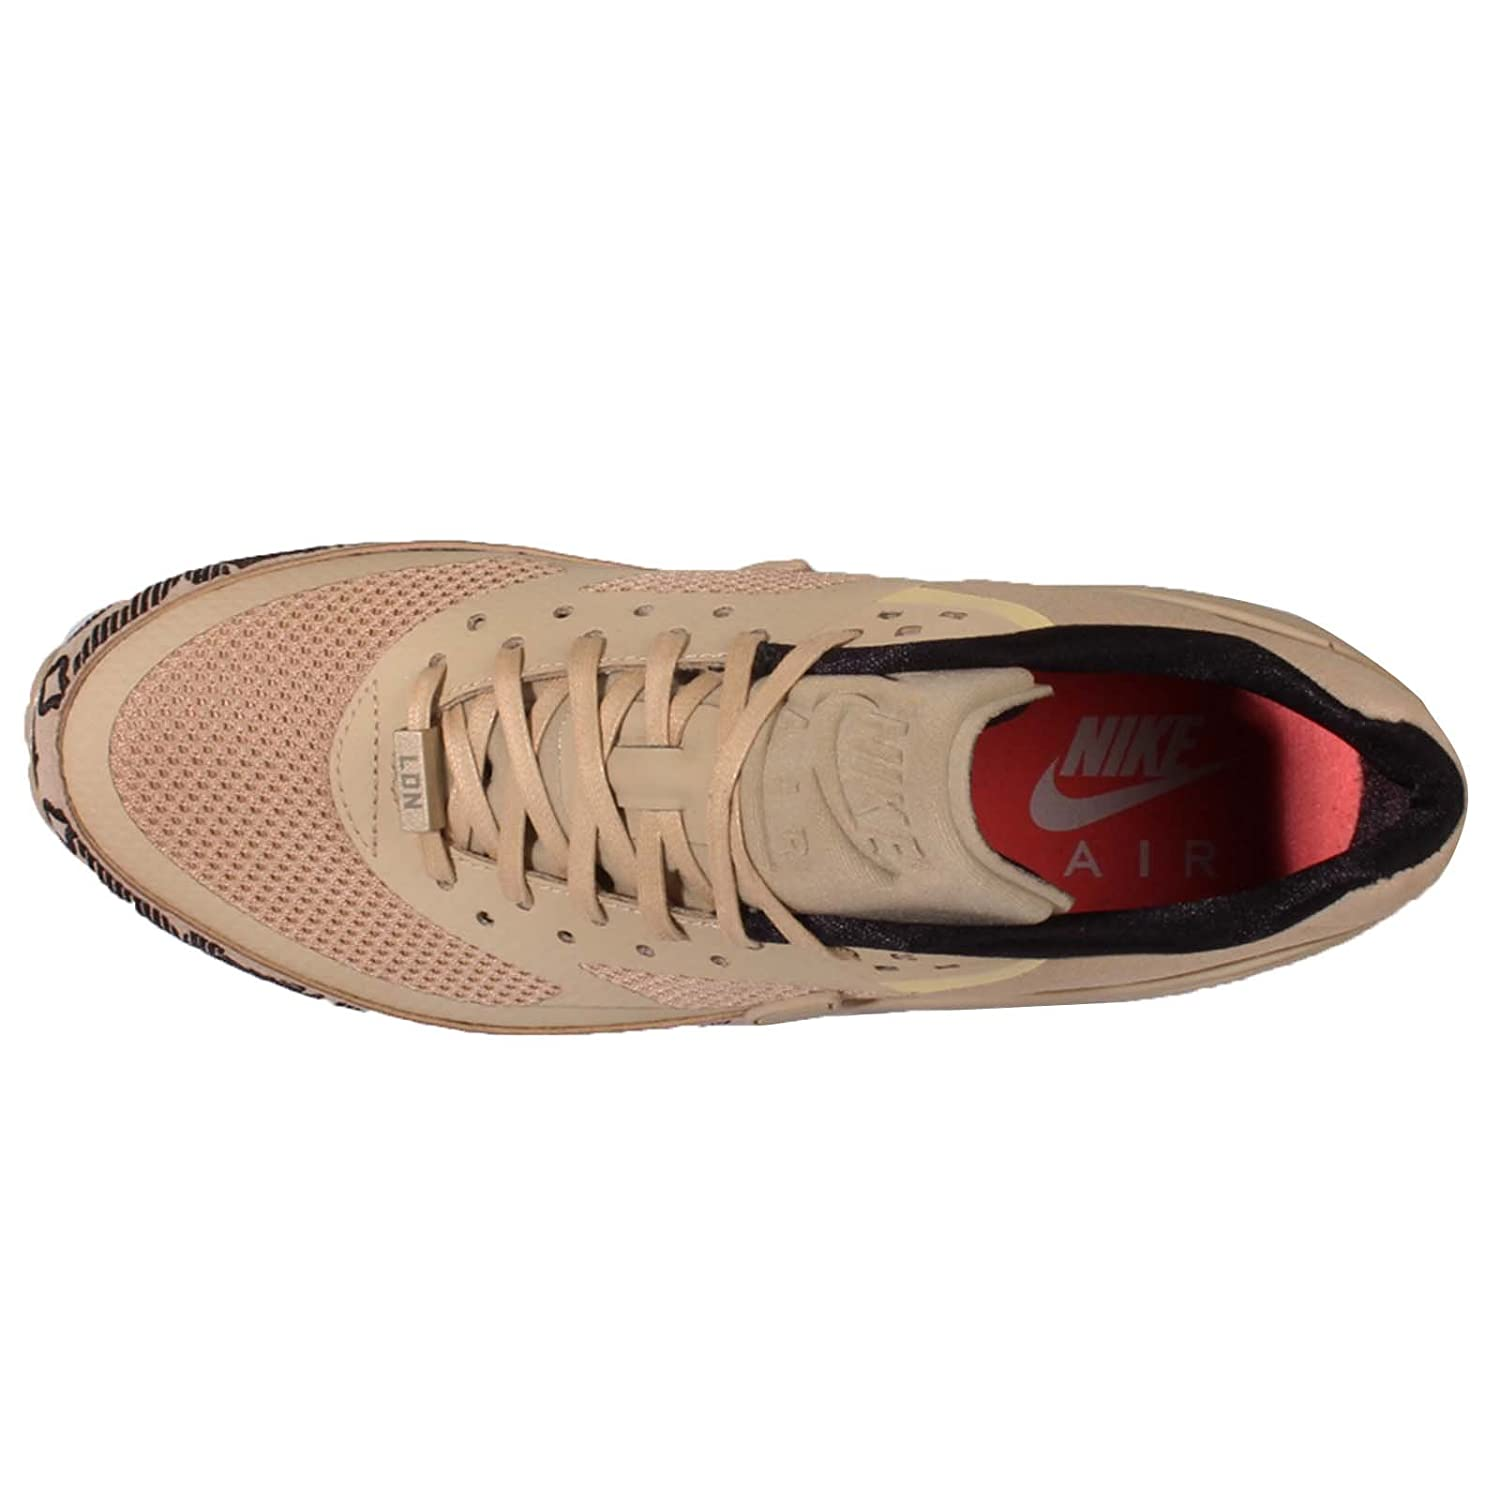 finest selection 7be6d b714f ... canada amazon nike womens w air max bw ultra lotc qs london linen linen  black fashion